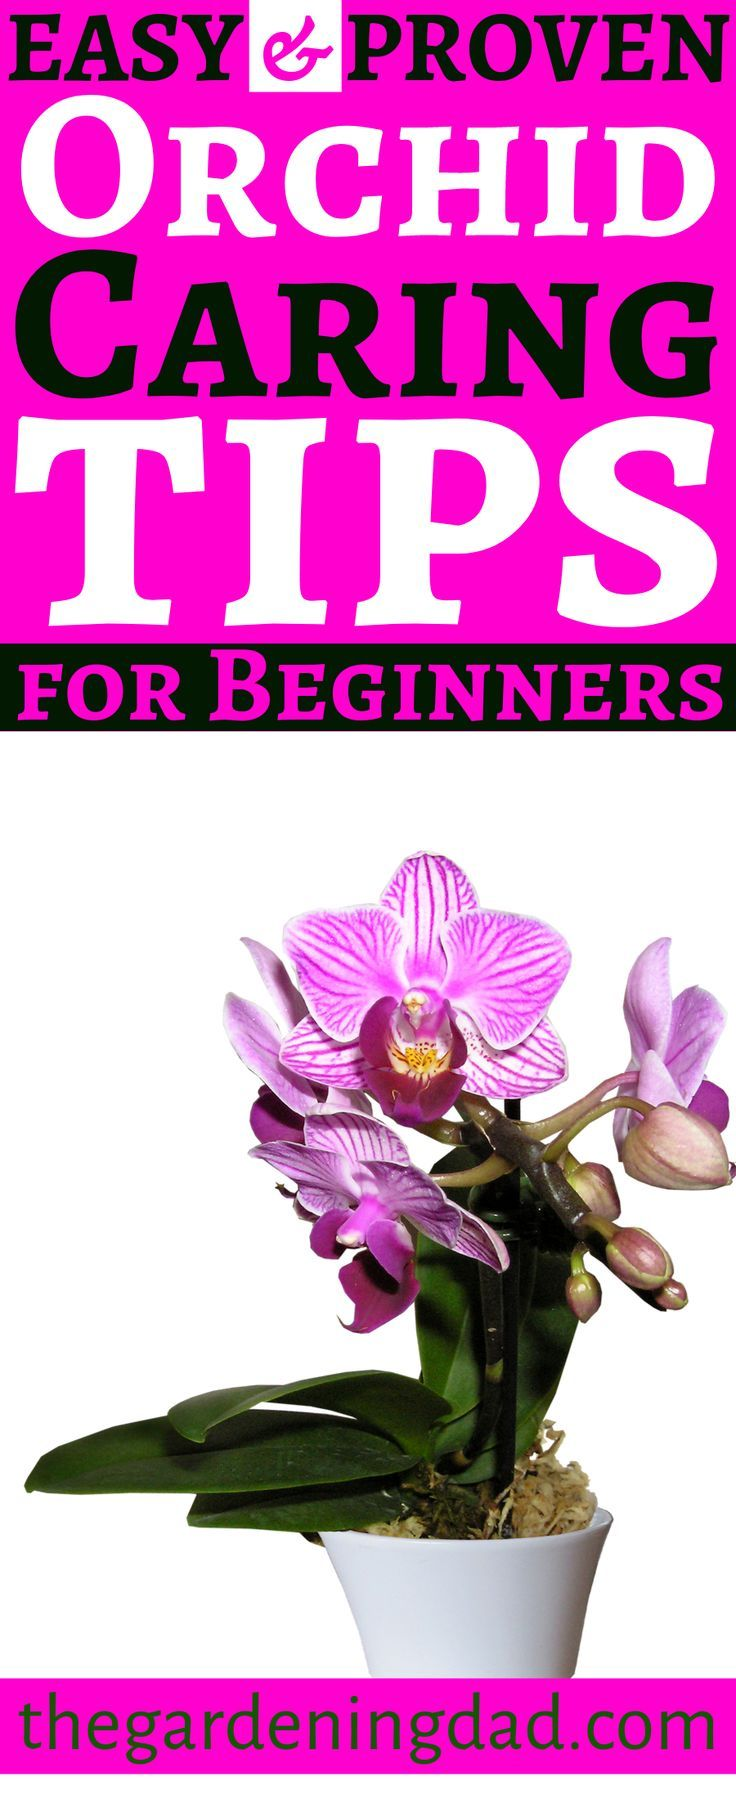 Photo of How to Care for Orchids: 10 EASY & PROVEN Tips – The Gardening Dad